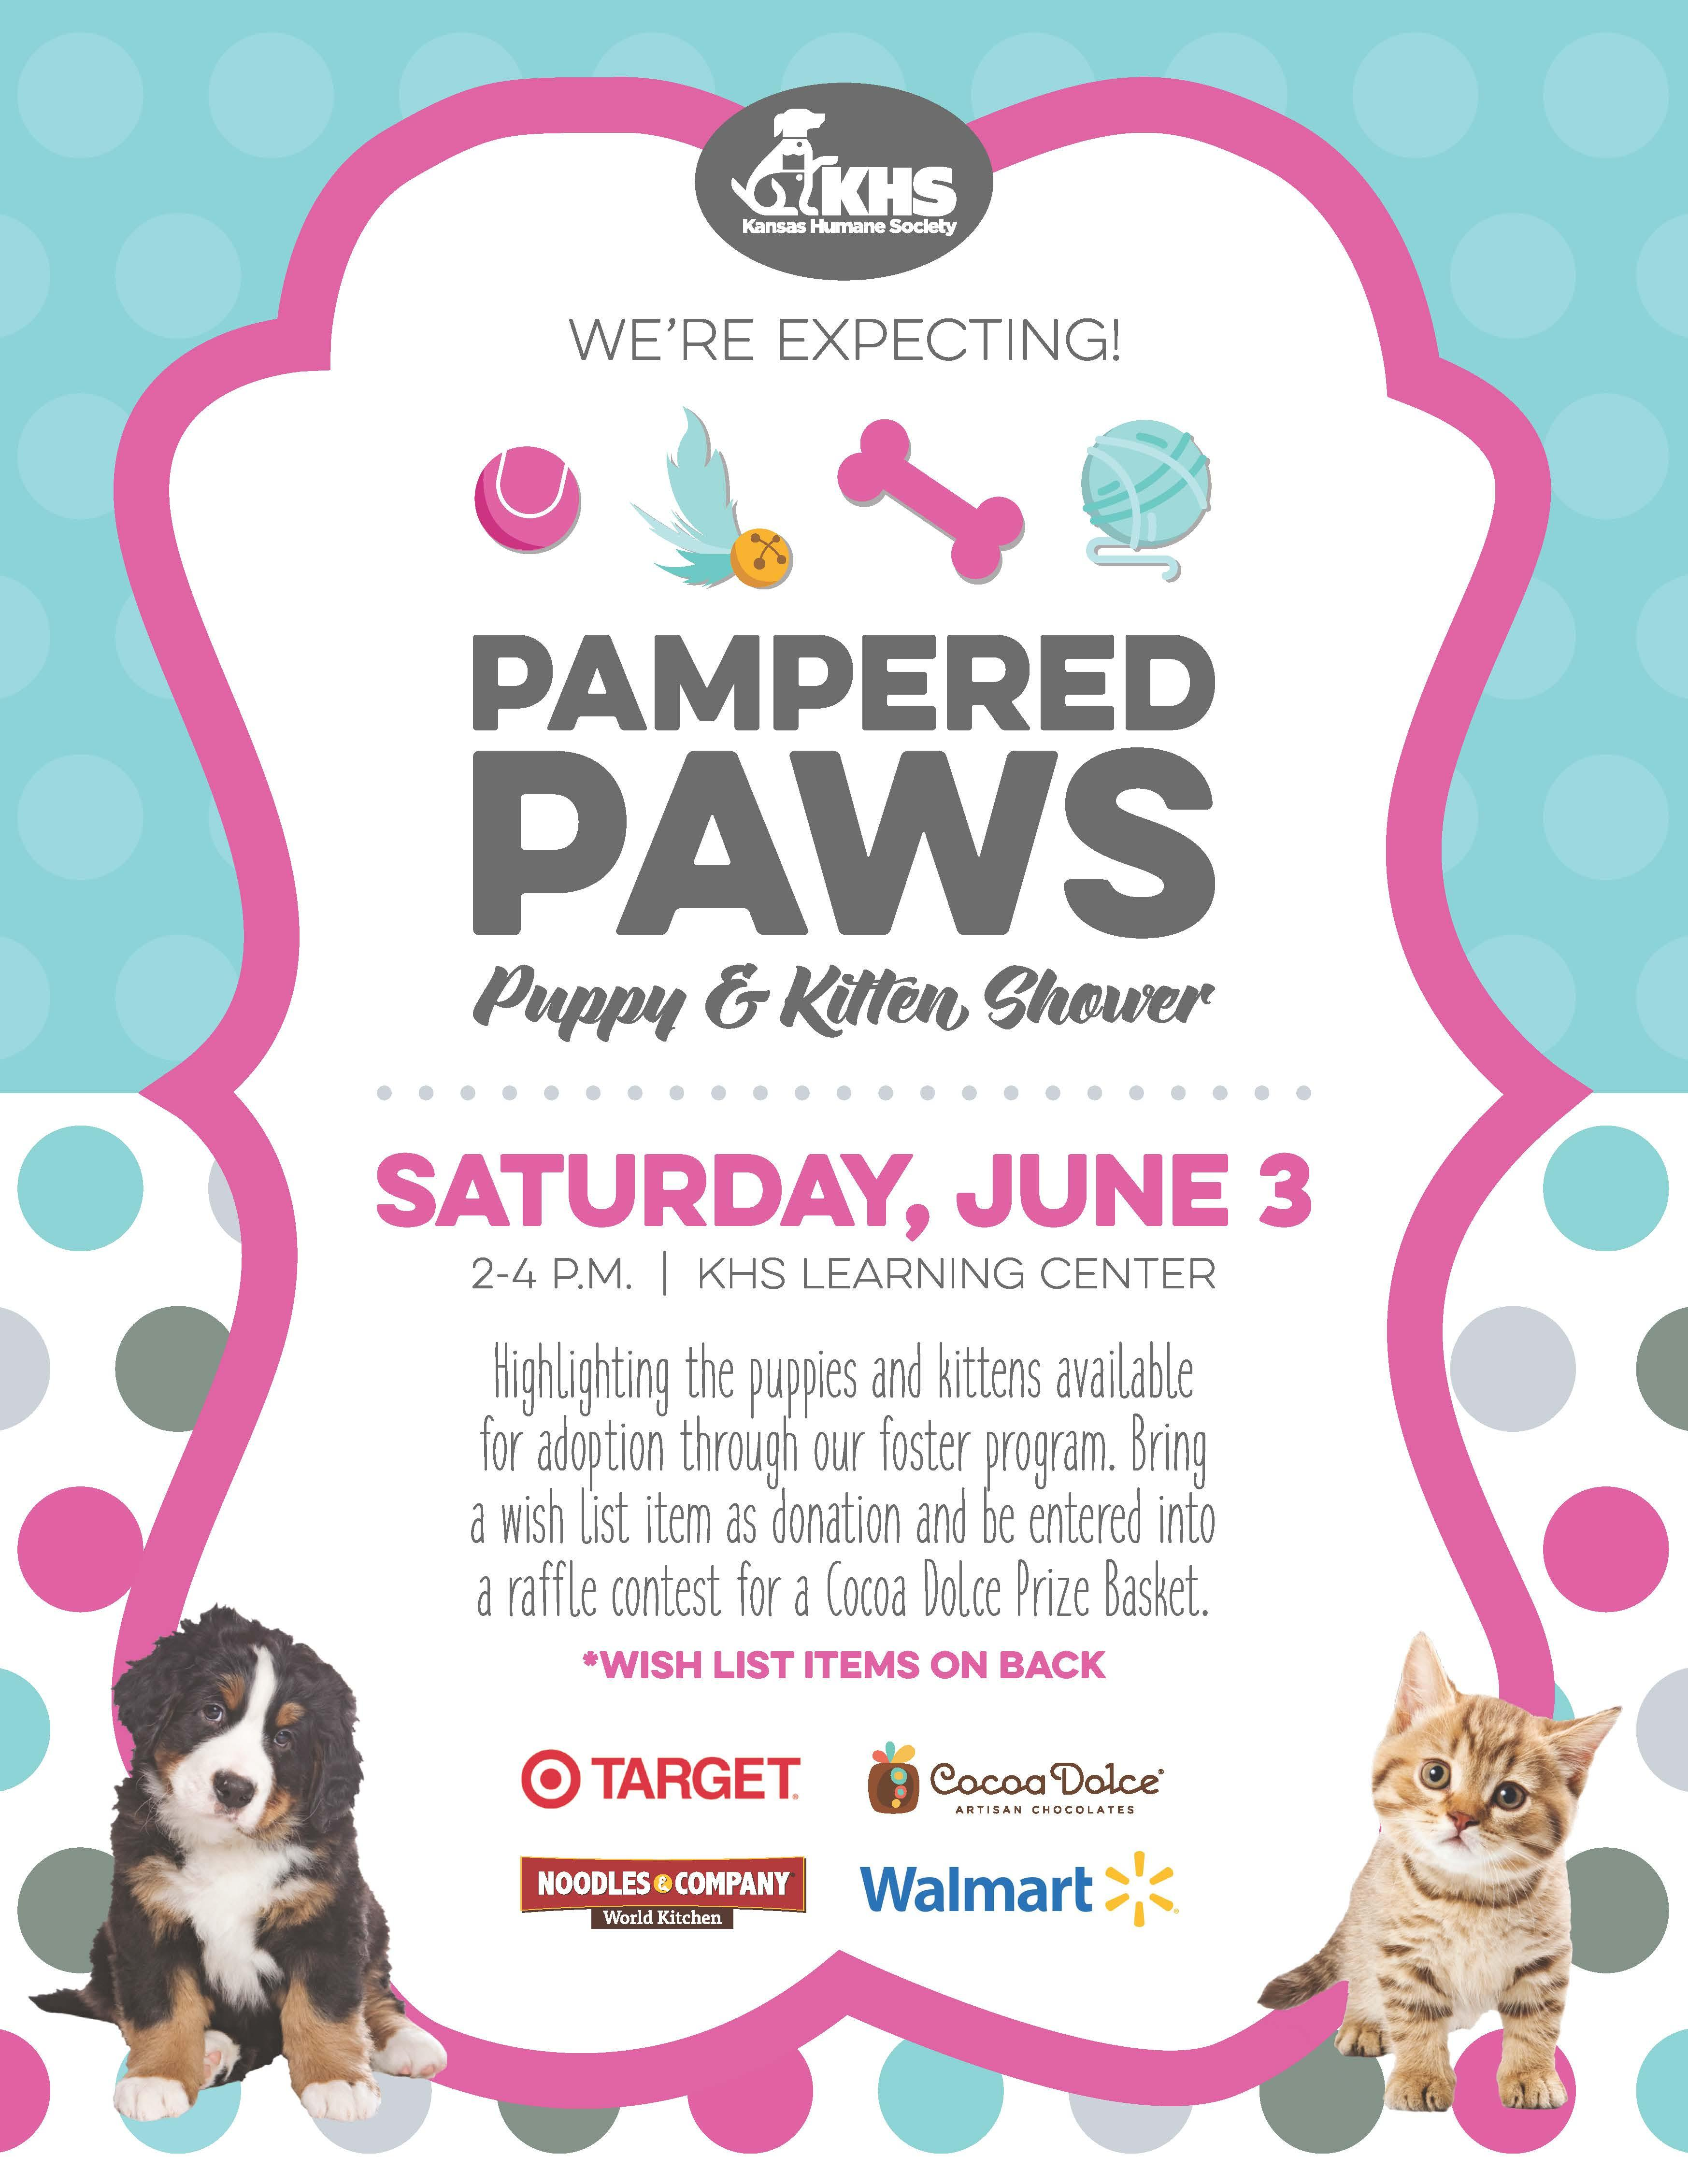 Pampered Paws Puppy & Kitten Shower